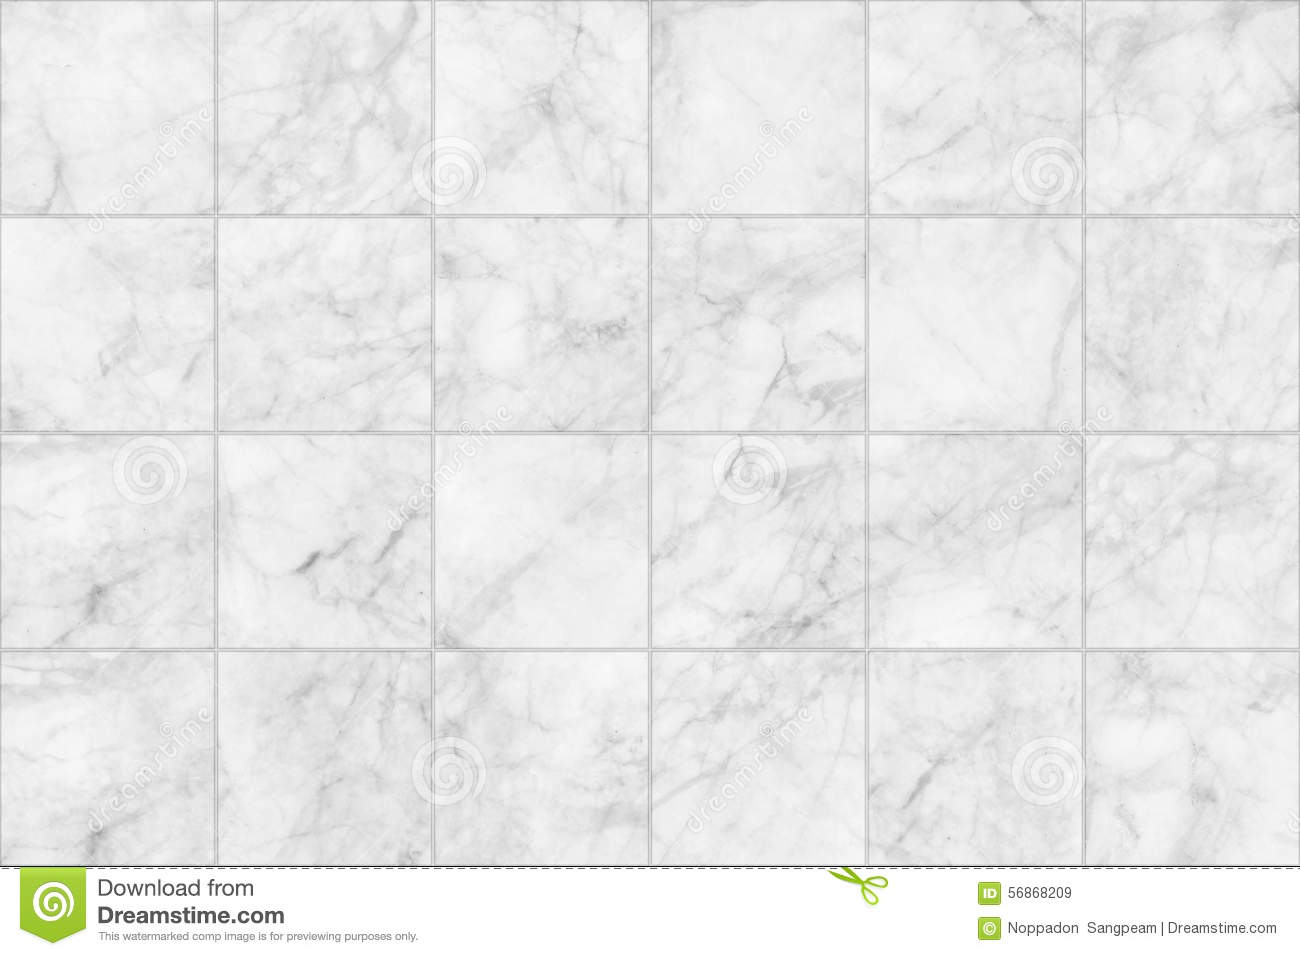 Marble Tiles Seamless Flooring Texture Background Design Stock Images  179 Photos